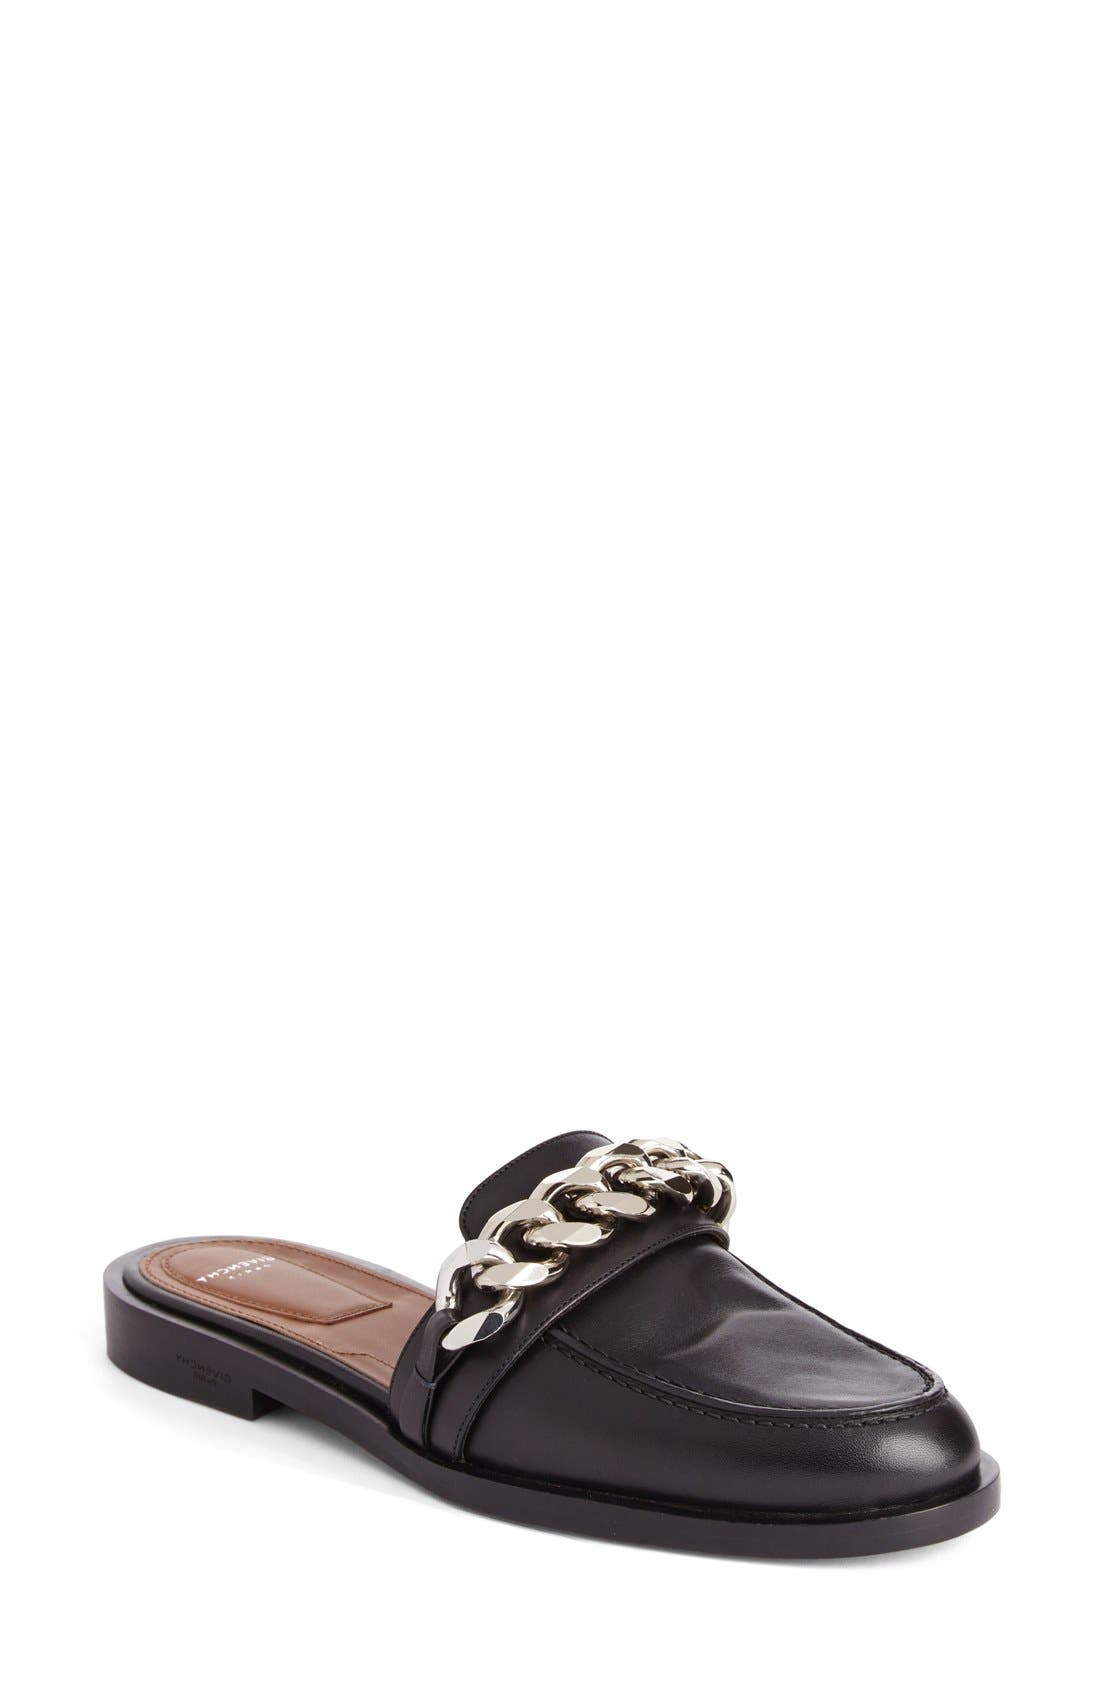 Main Image - Givenchy Chain Strap Loafer Mule (Women)